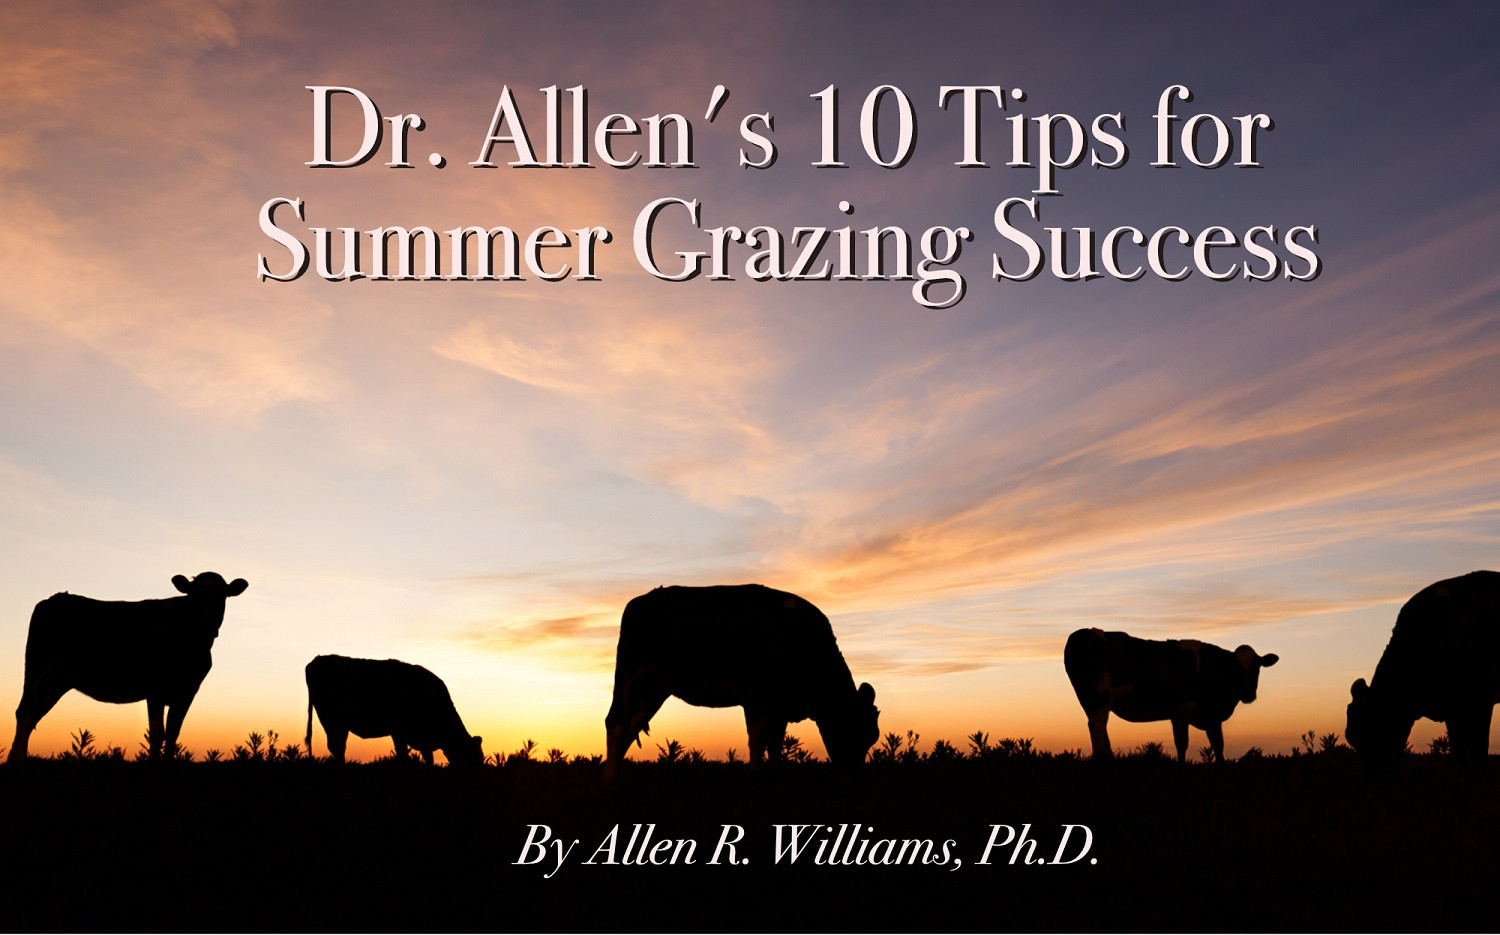 Dr. Allen's 10 Tips for Summer Grazing Success